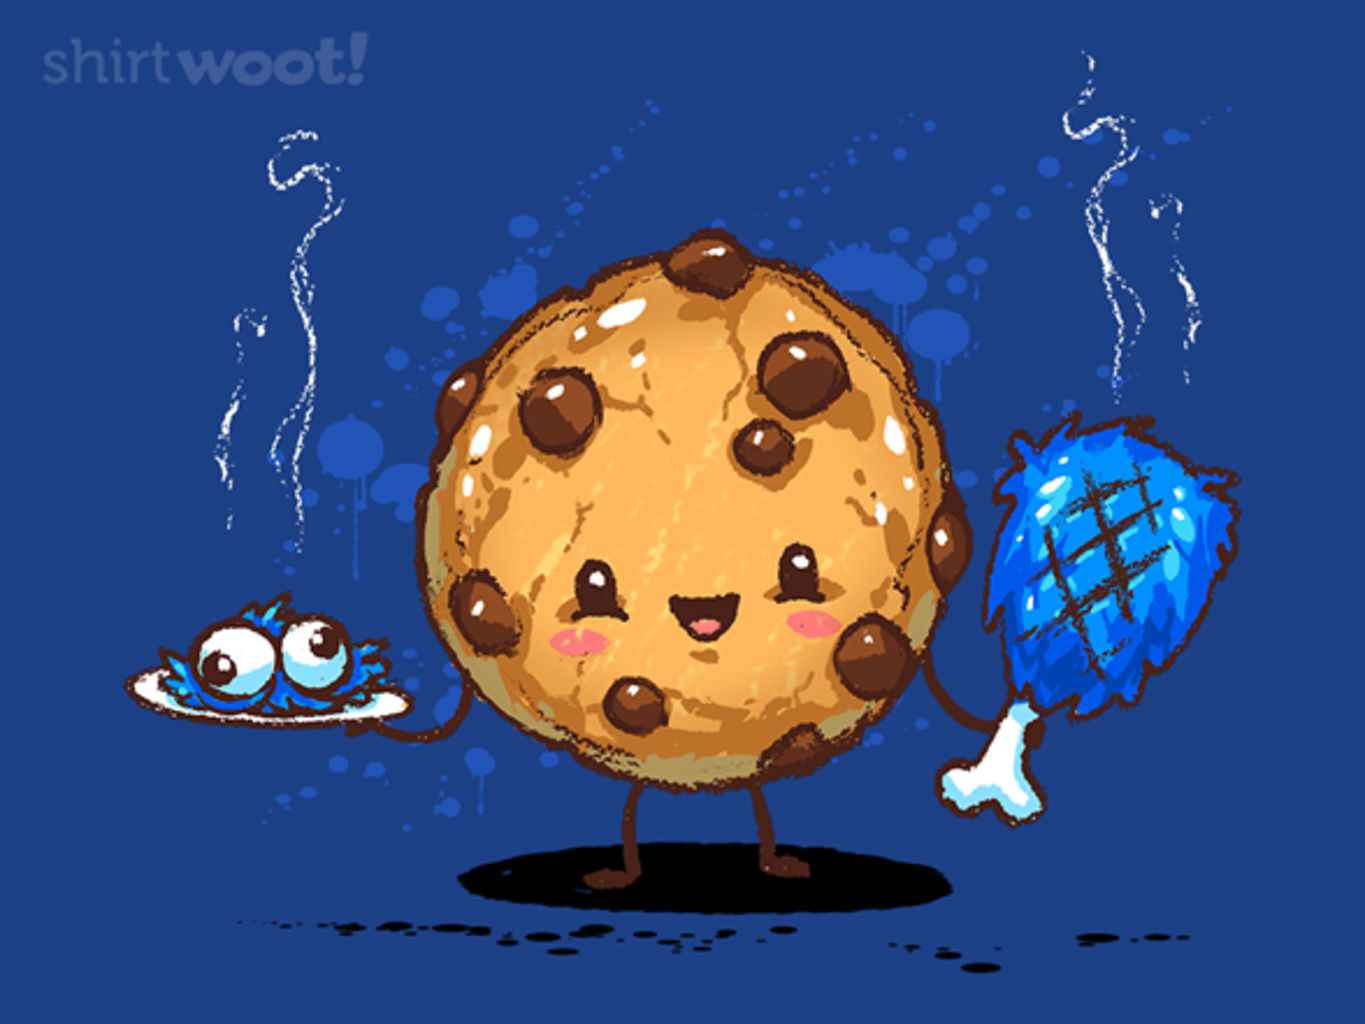 Woot!: Vengeful Cookie